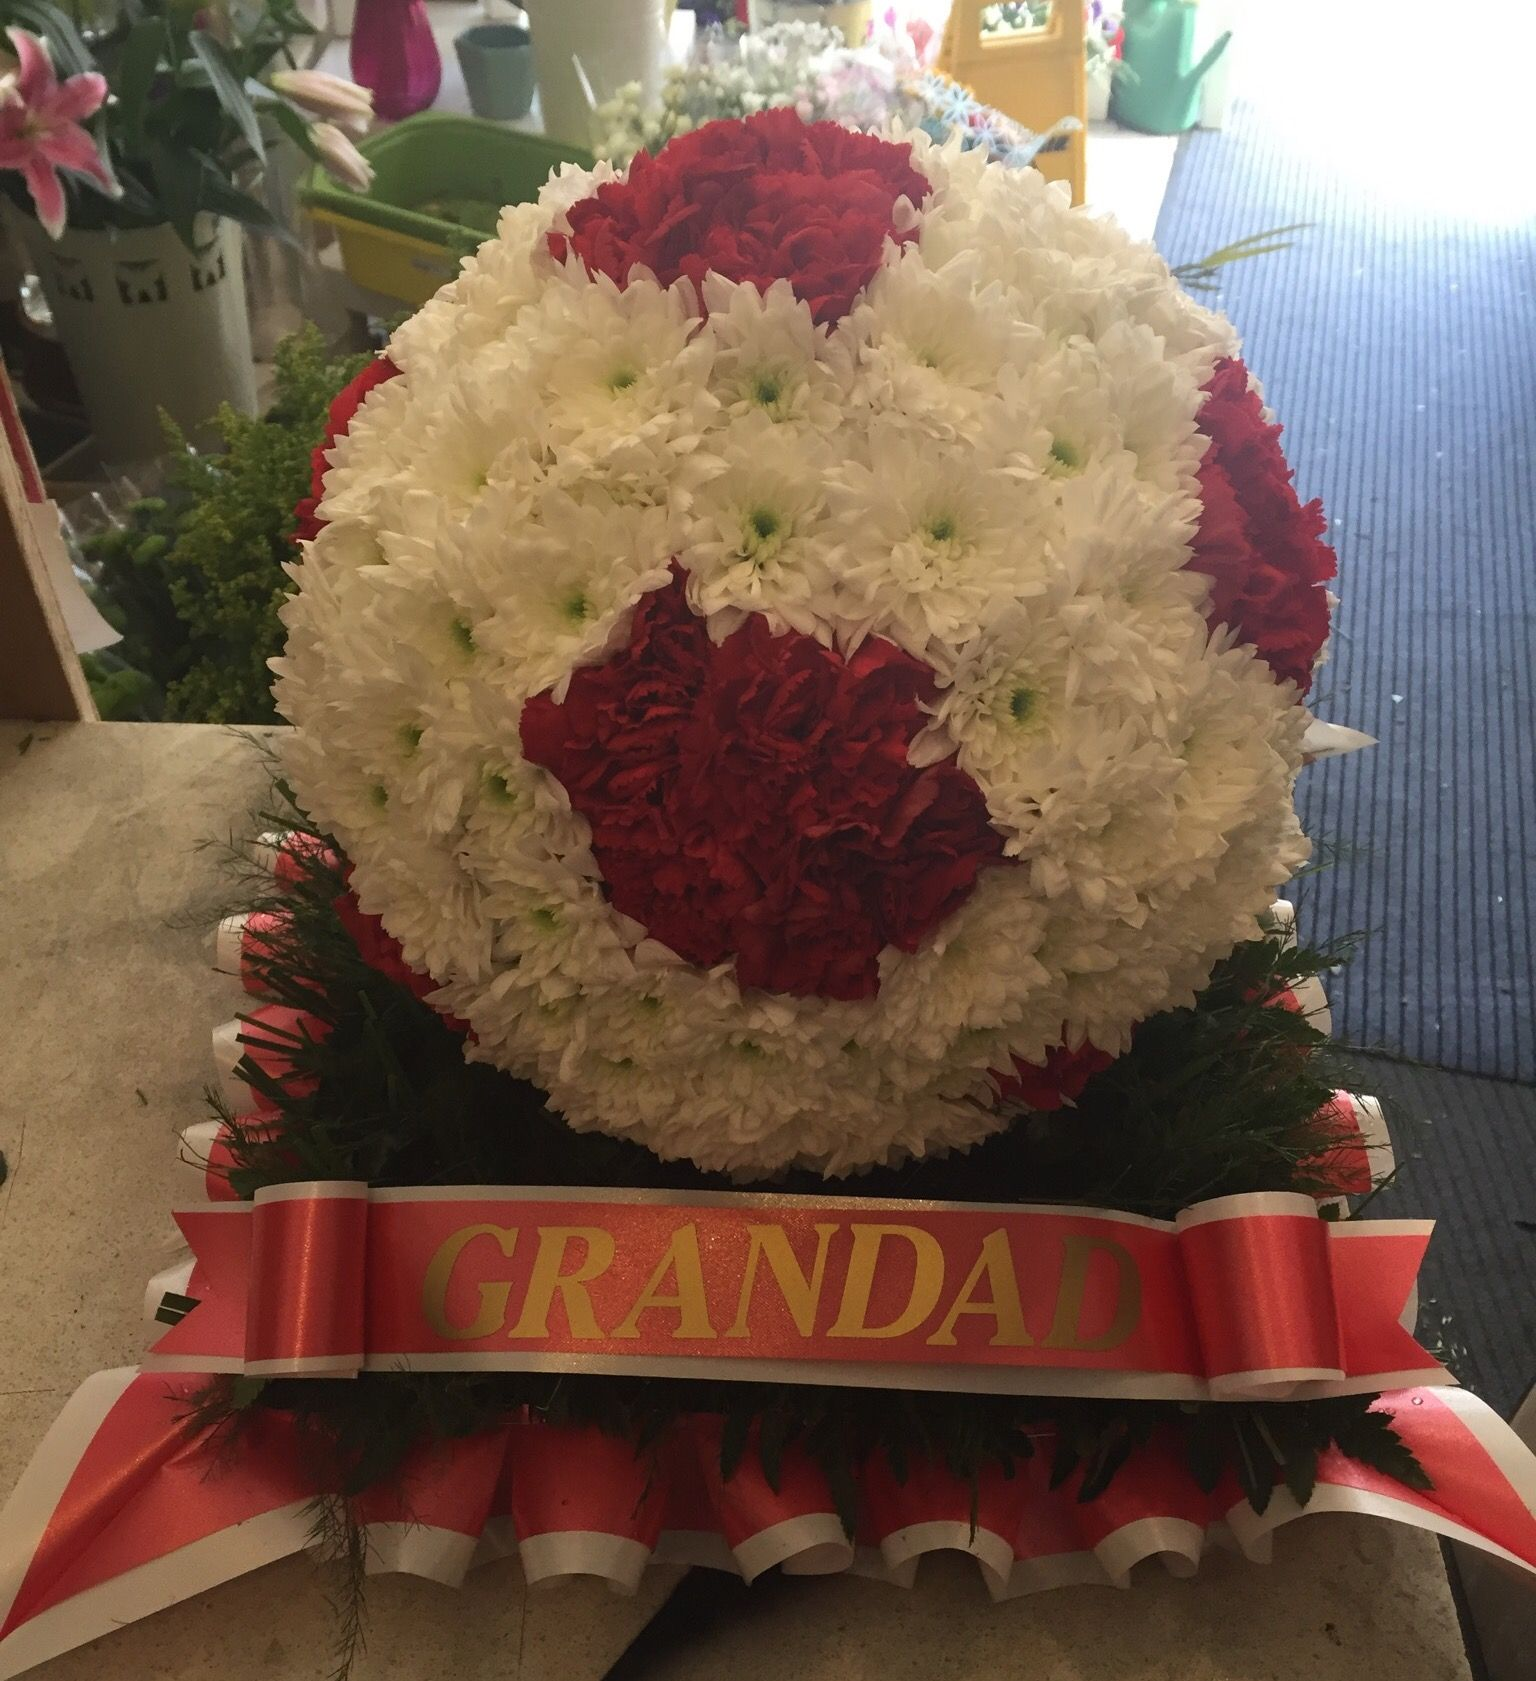 Floral football funeral tribute butterfliesandblooms floral football funeral tribute butterfliesandblooms izmirmasajfo